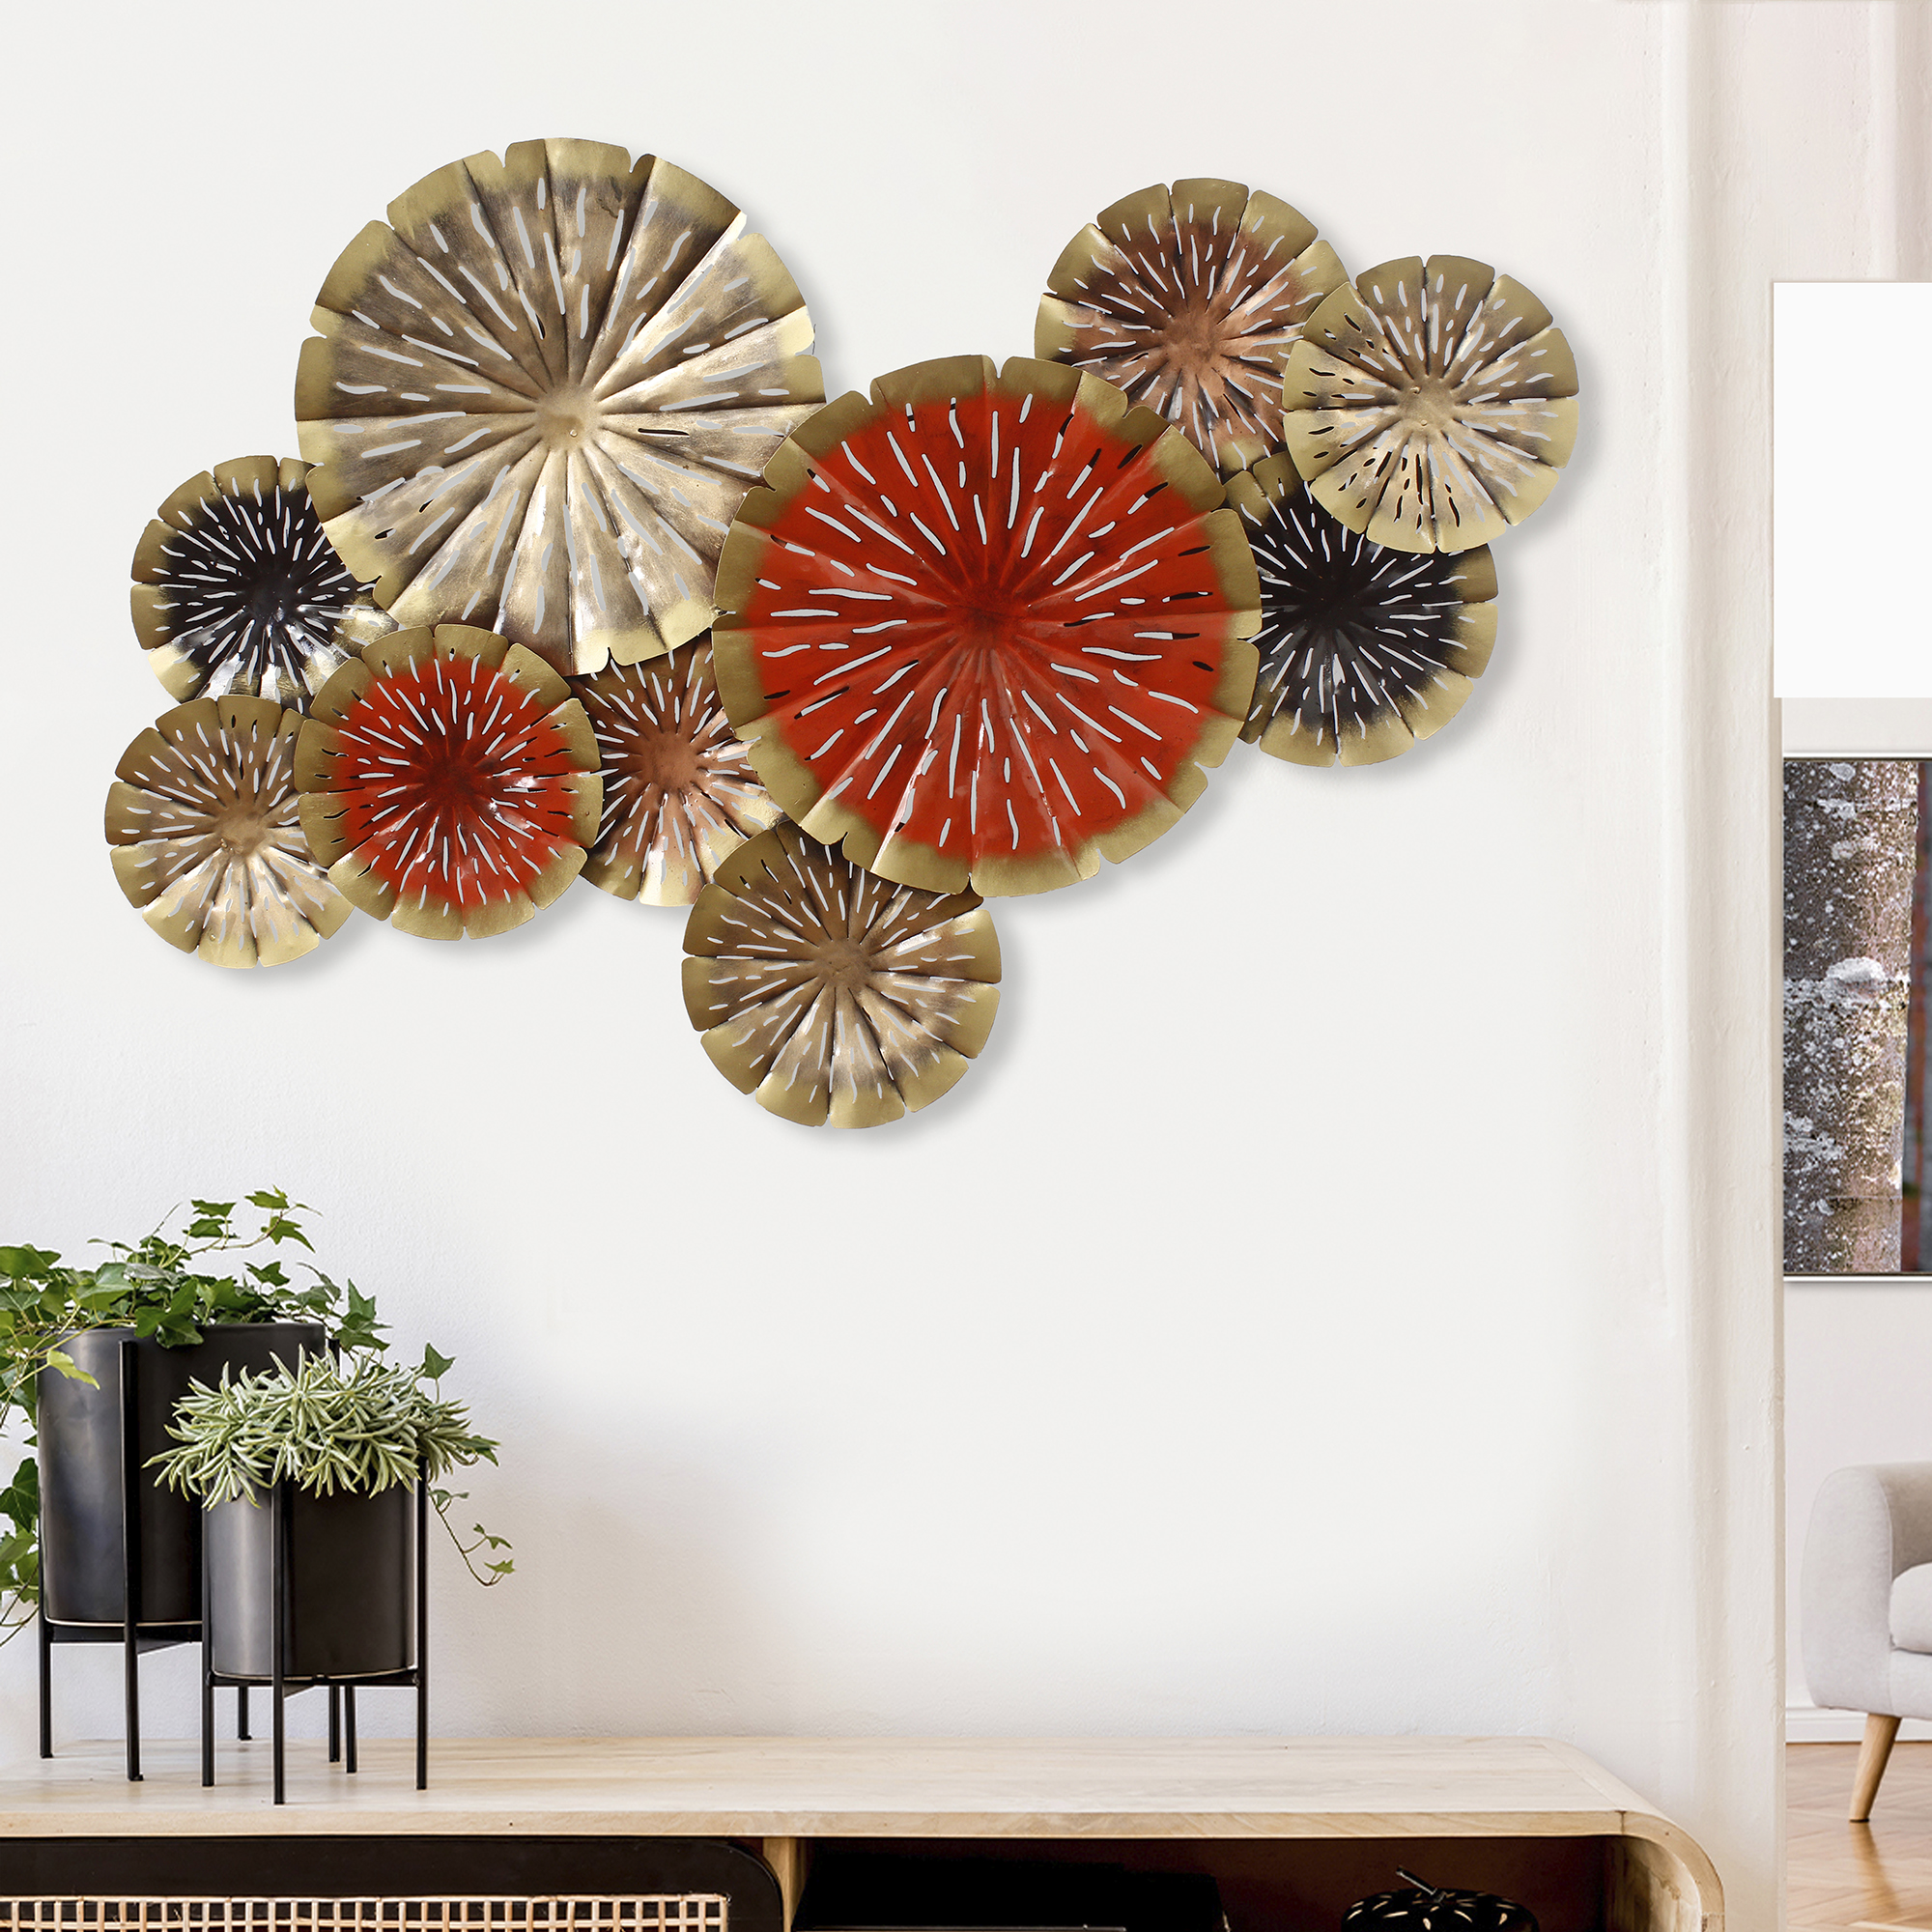 Abstract Colorful Floral Plates Collection Handcrafted Iron Wall Hanging  Indian Home Decor